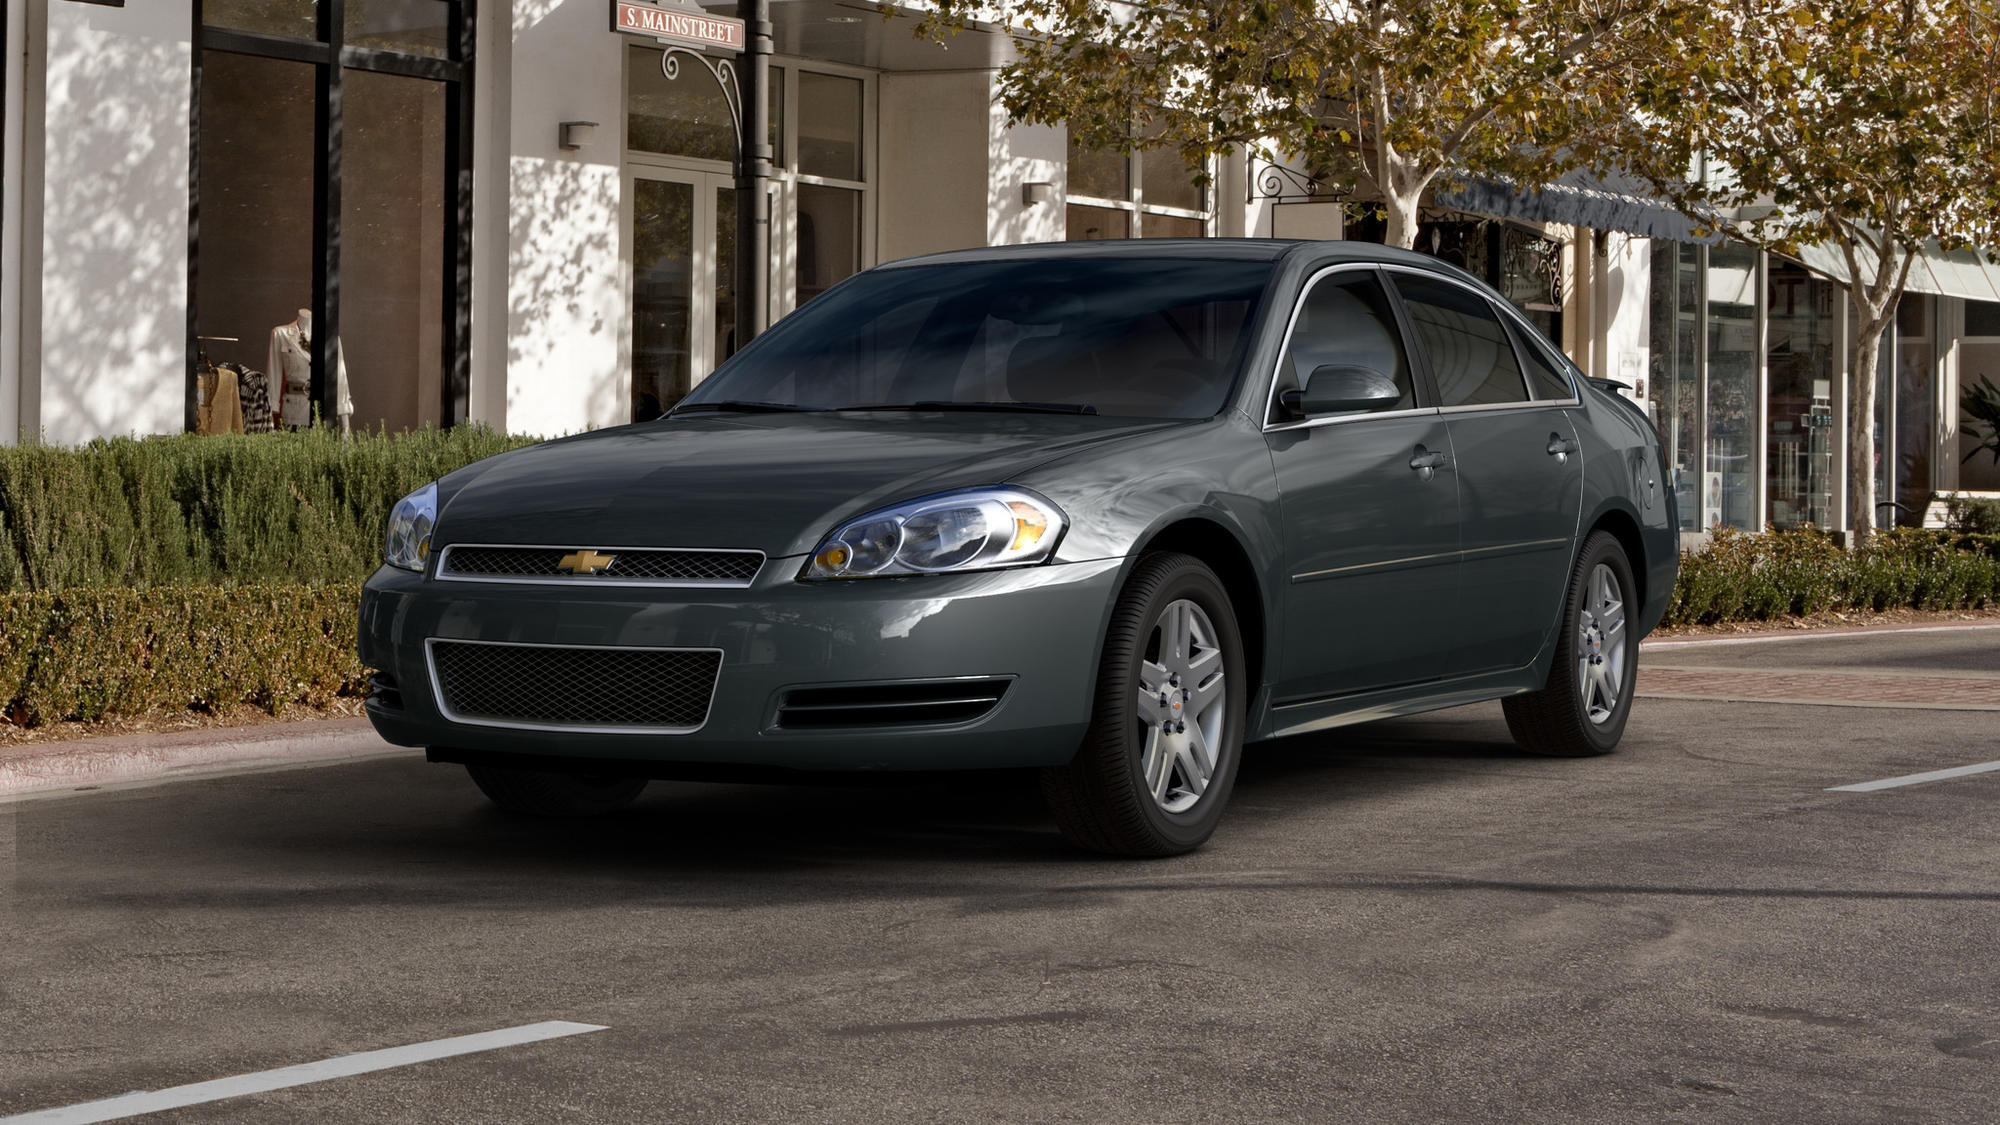 Used 2014 Chevy Impala >> Want a car with front bench seat? You may be out of luck ...